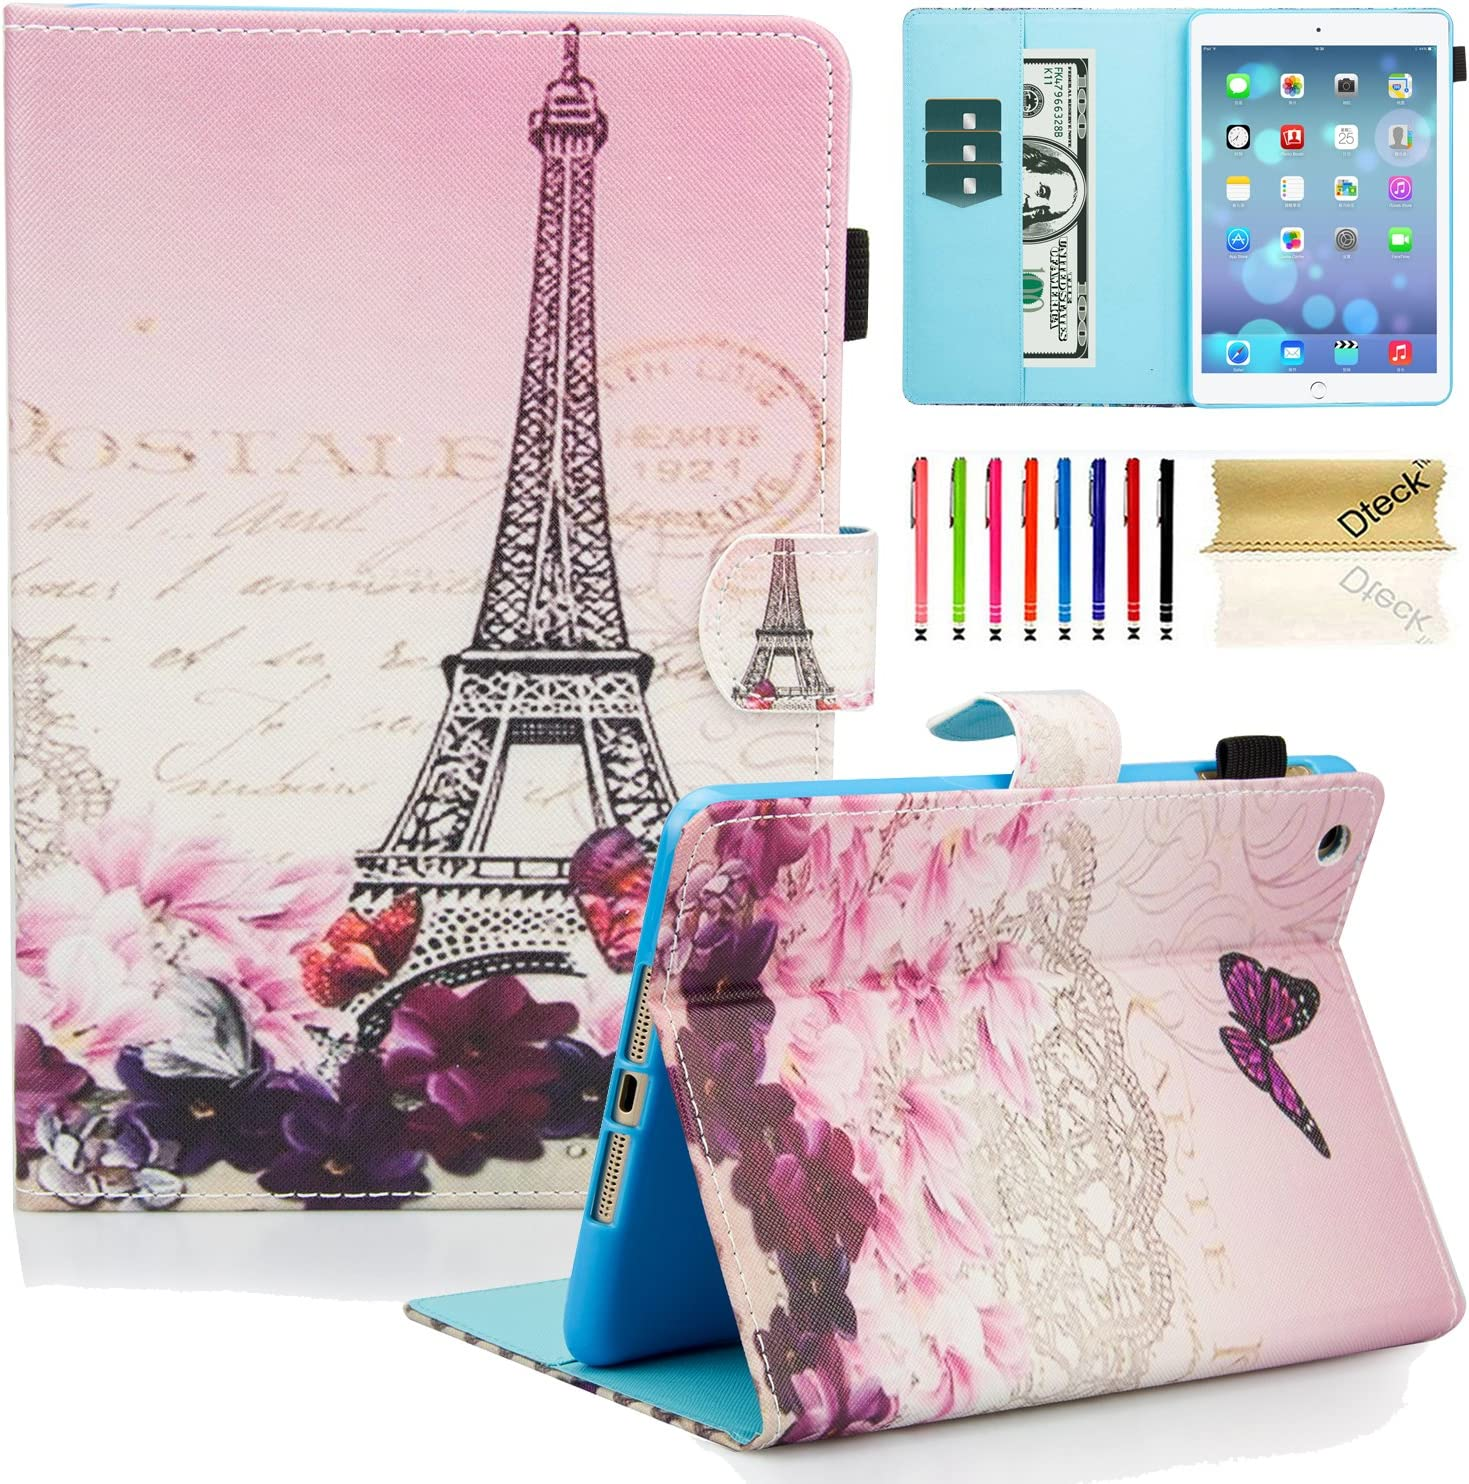 iPad Mini Case, iPad Mini 2/3/4/5 Case - Dteck Slim Folio Stand PU Leather Smart Wallet Case with Auto Wake/Sleep Magnetic Cover for Apple iPad Mini 5/ Mini 4/ Mini 3 / Mini 2 / Mini 1, Romantic Paris